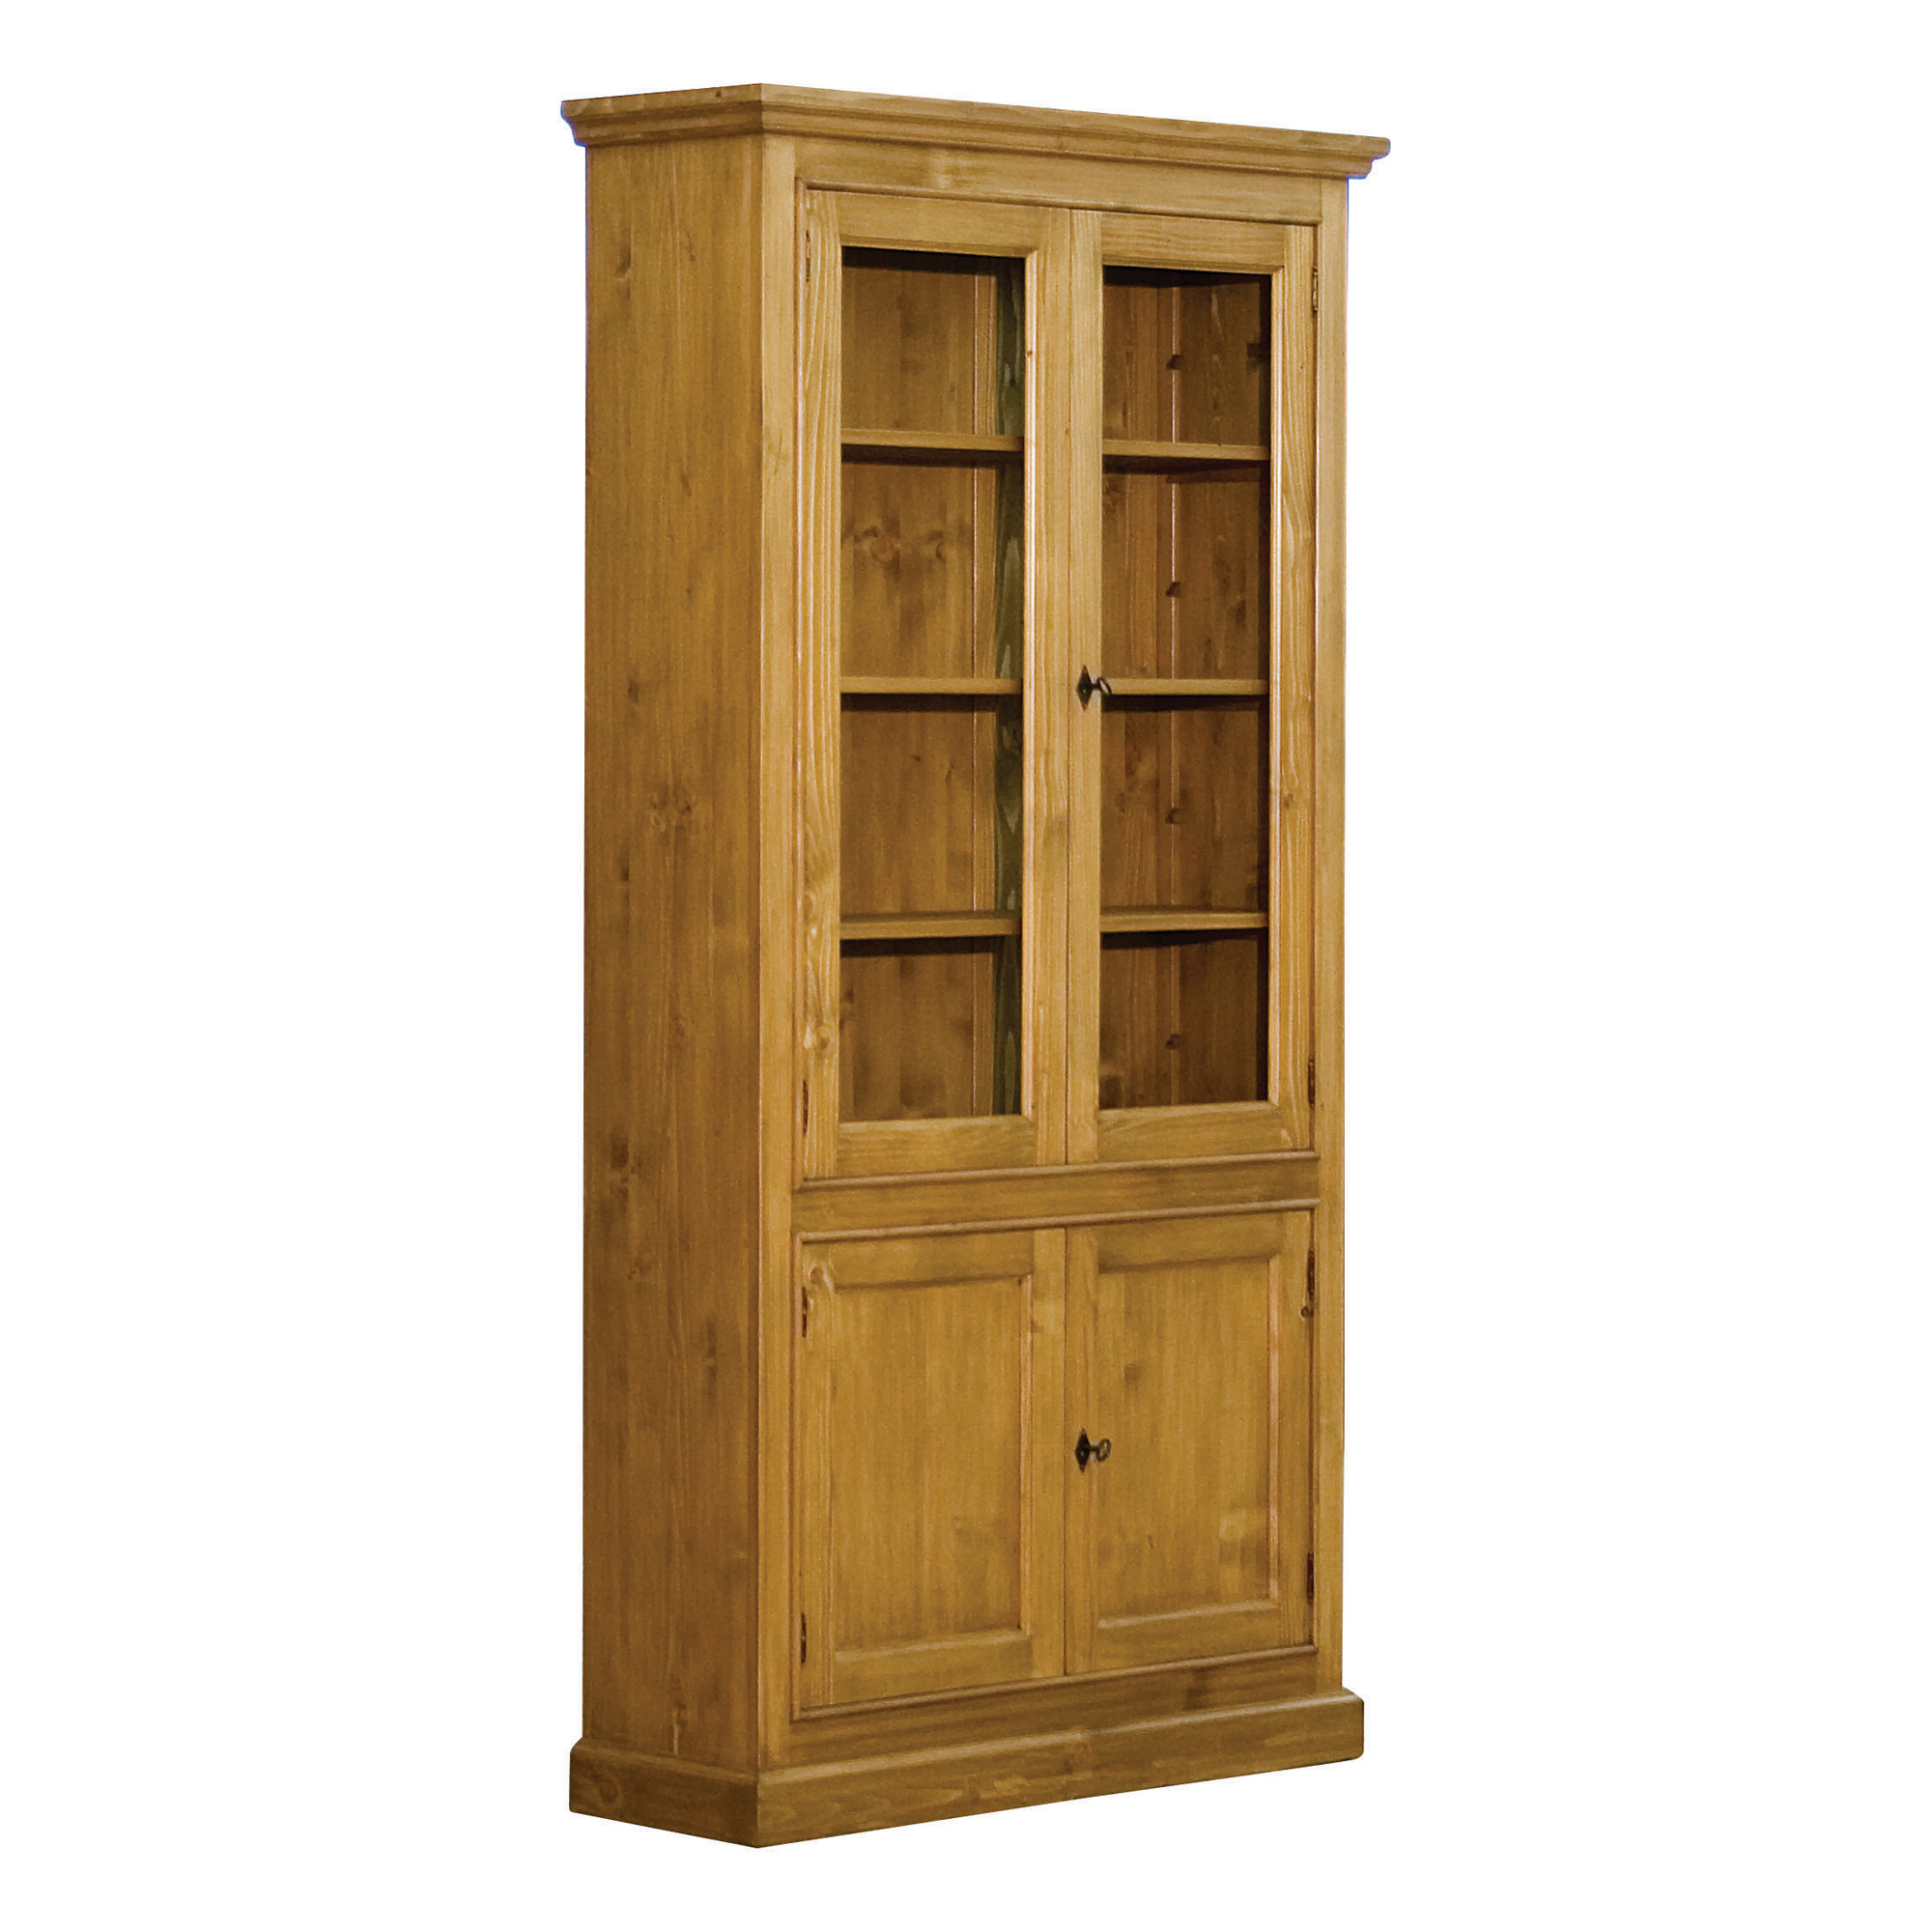 French Glazed Bookcase with Cupboard